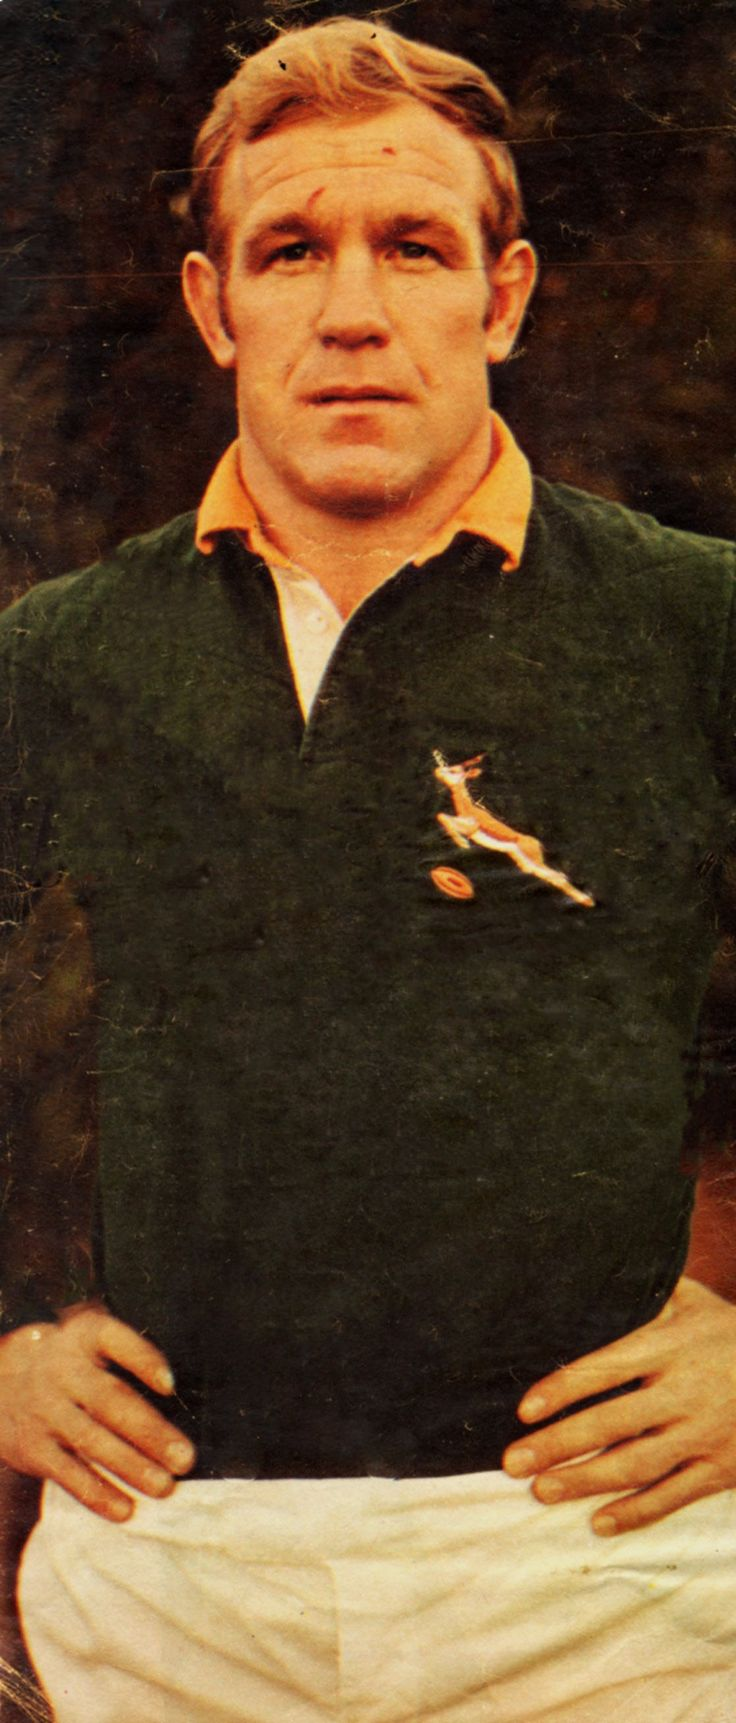 Hannes Marais (Voorry) - 1971 (Mclook rugby collection)